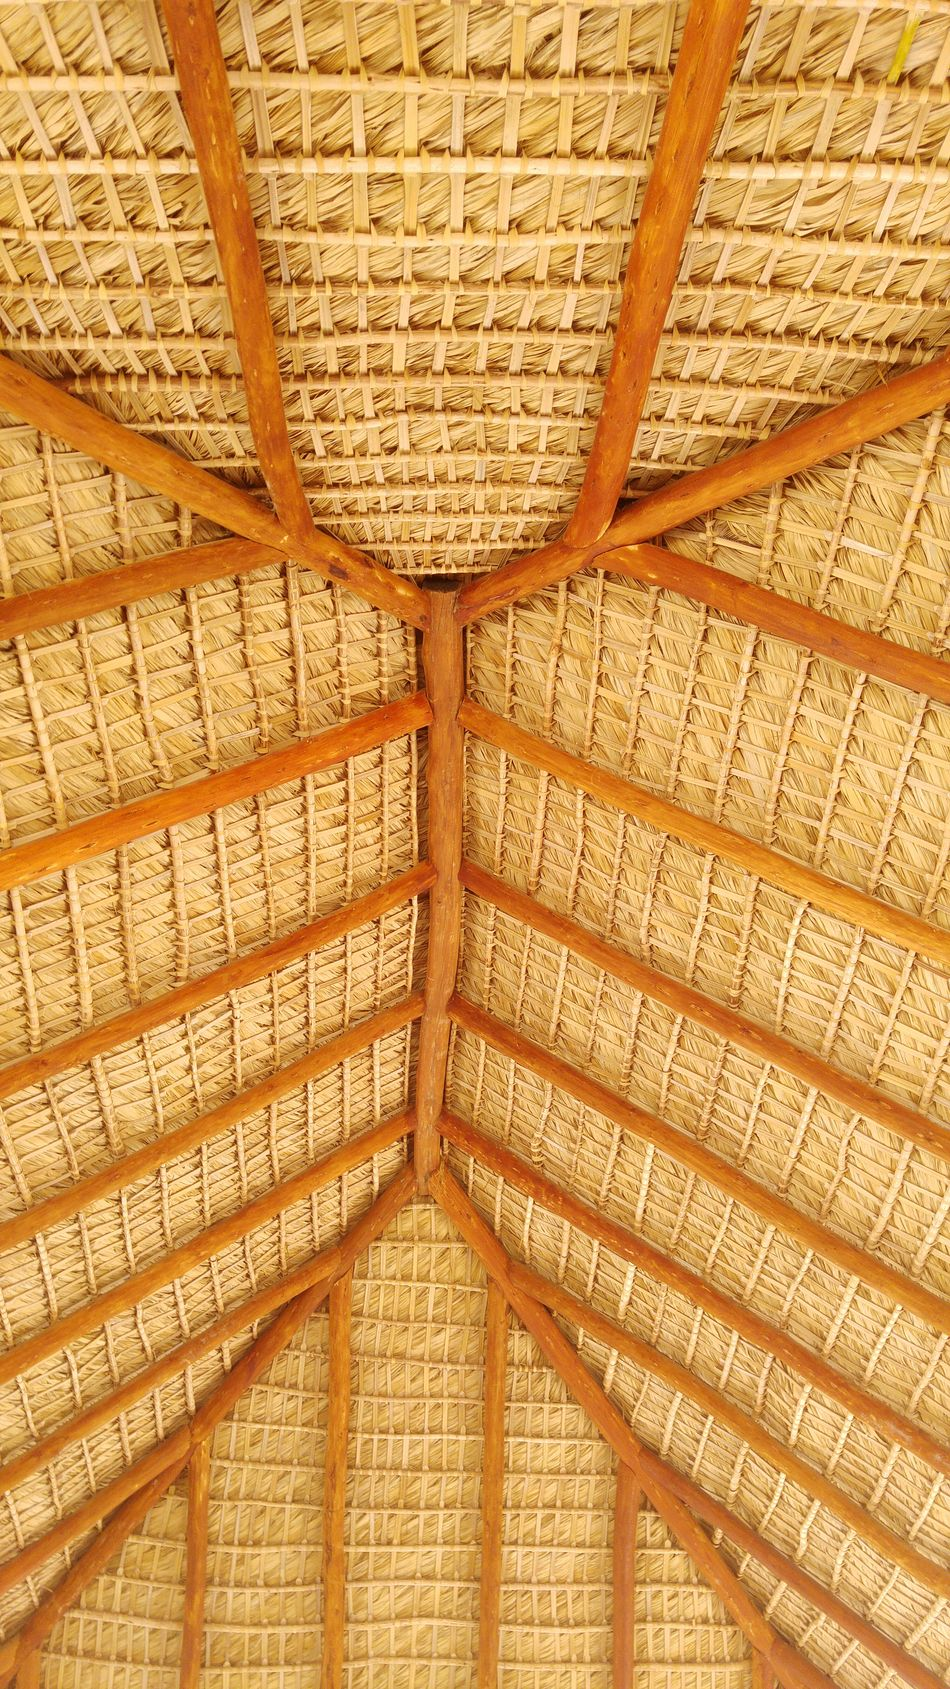 Full Frame Architecture Design Architectural Feature Roof Beam Woven Architectural Design Pattern Caribbean Islandlife Island Architecture Roof Geometric Shape Symetry